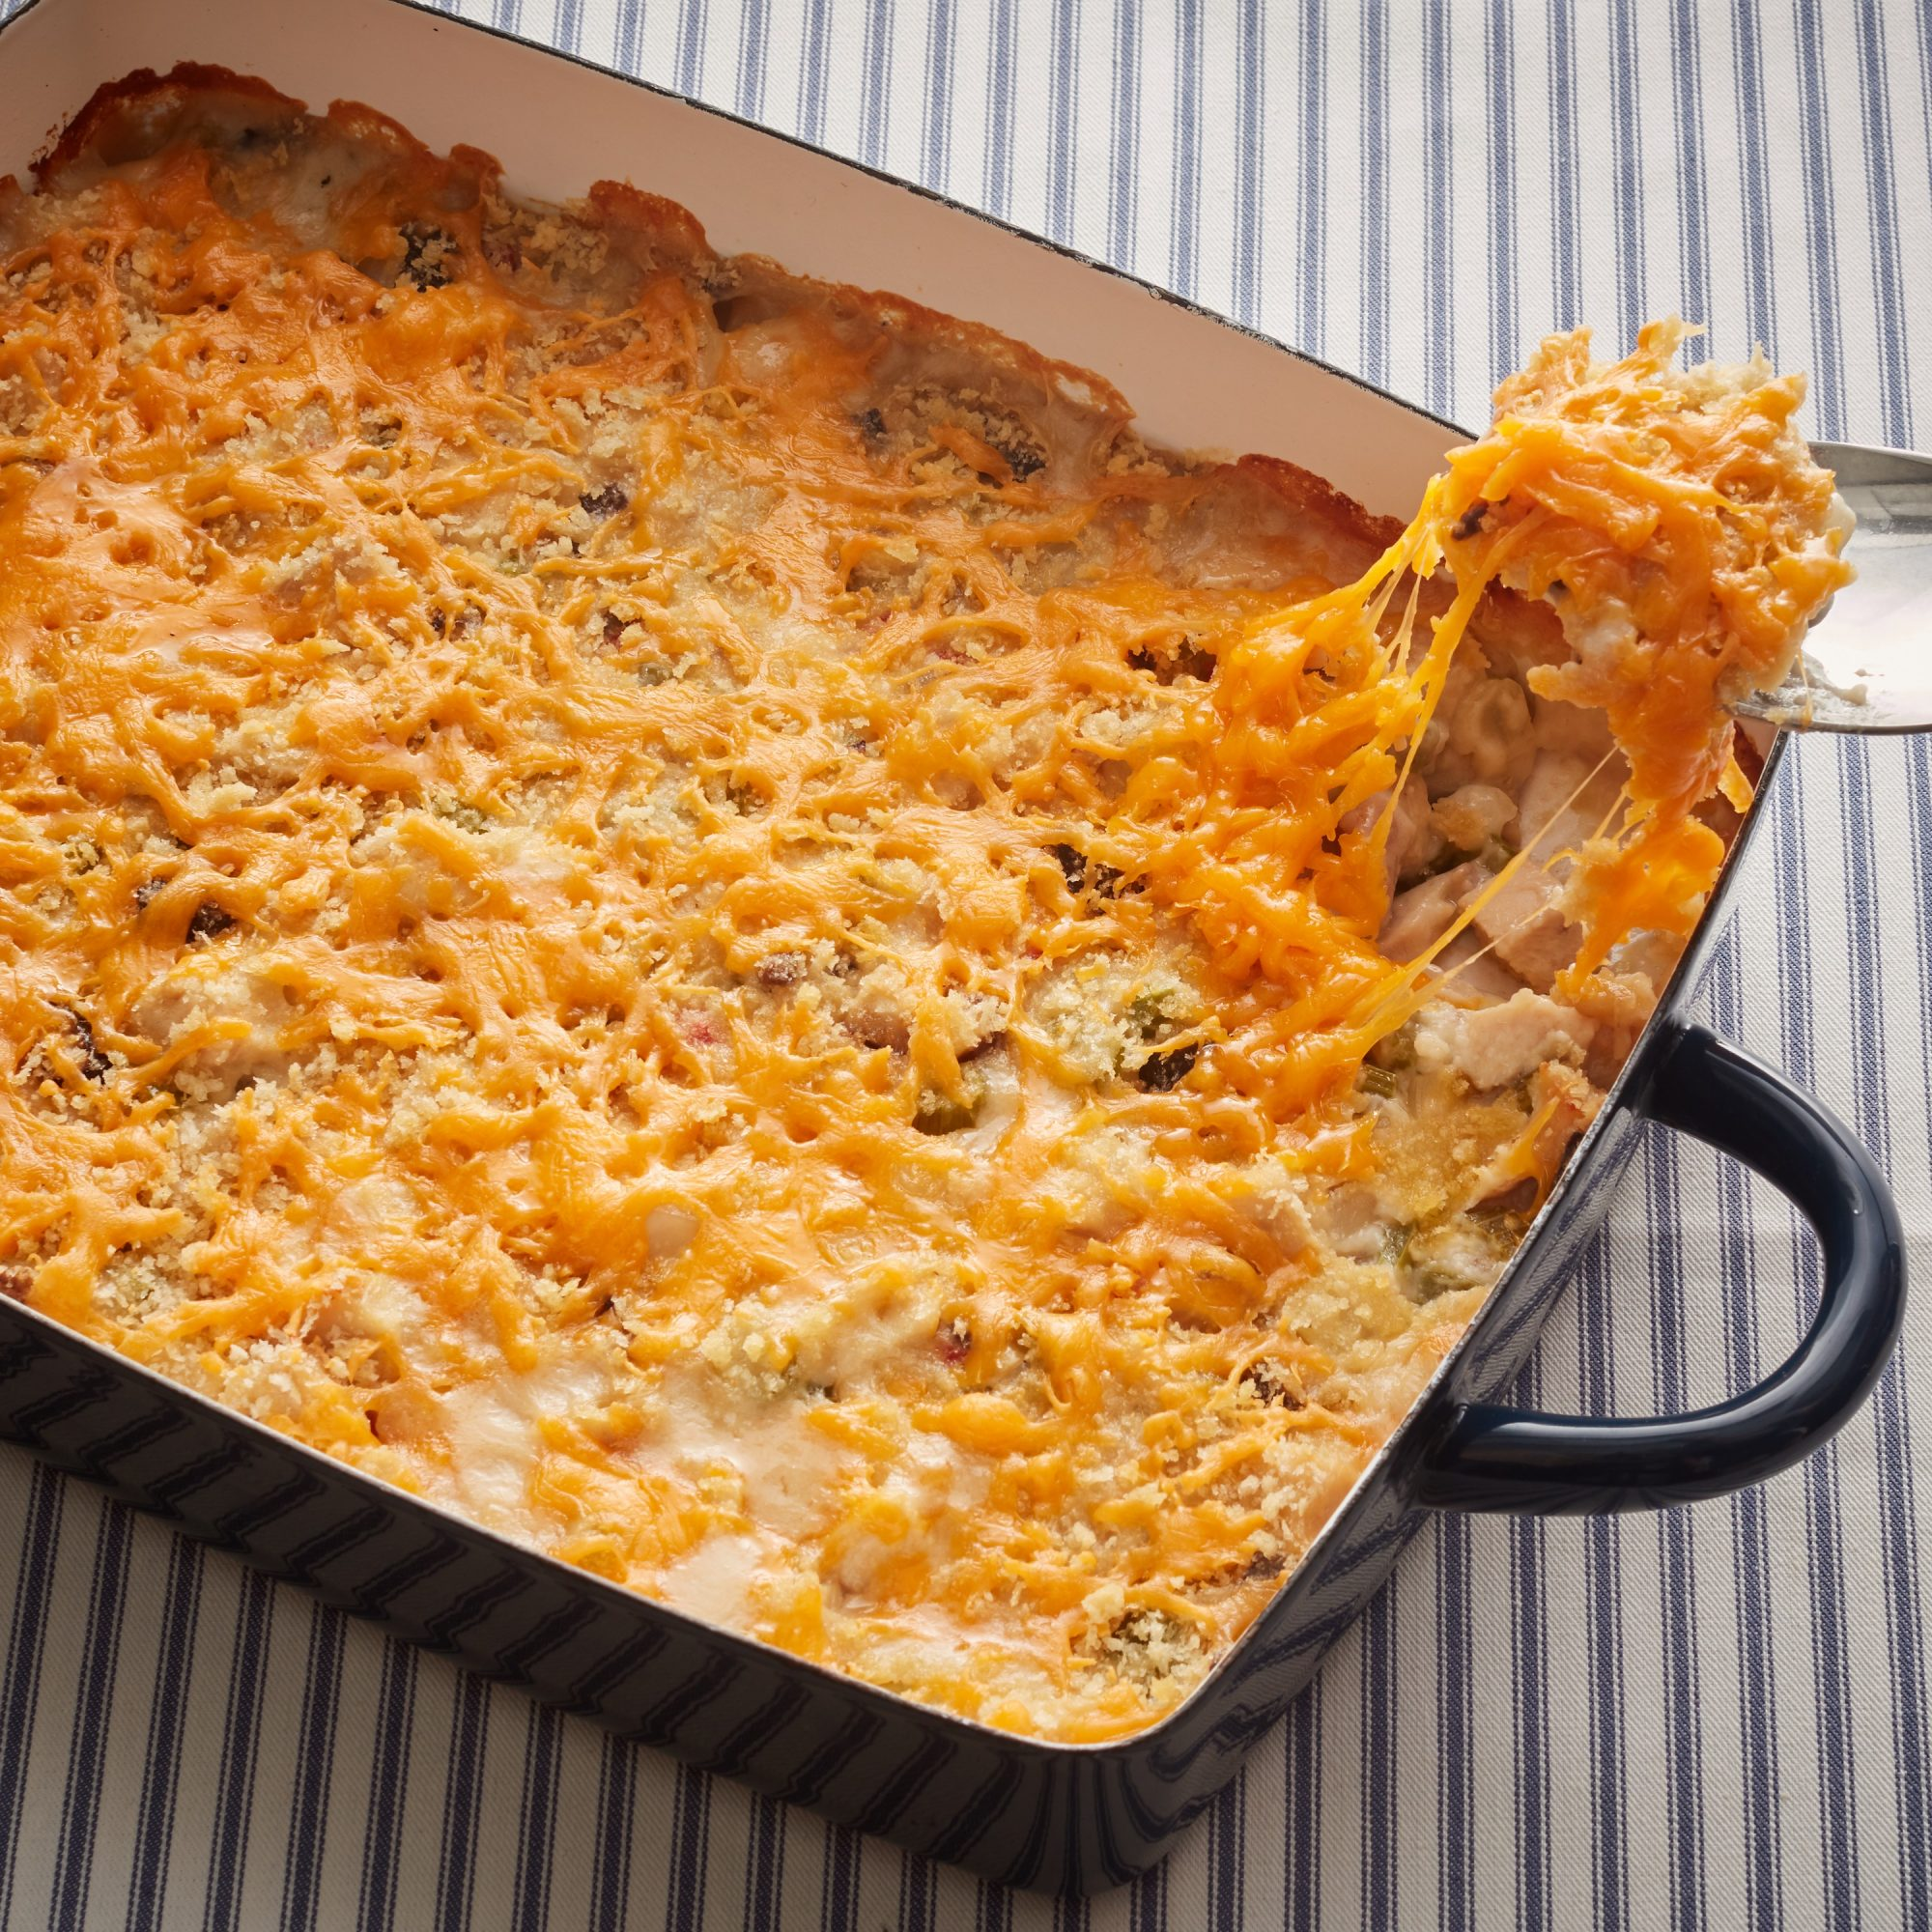 Turkey casserole with breadcrumbs and cheese